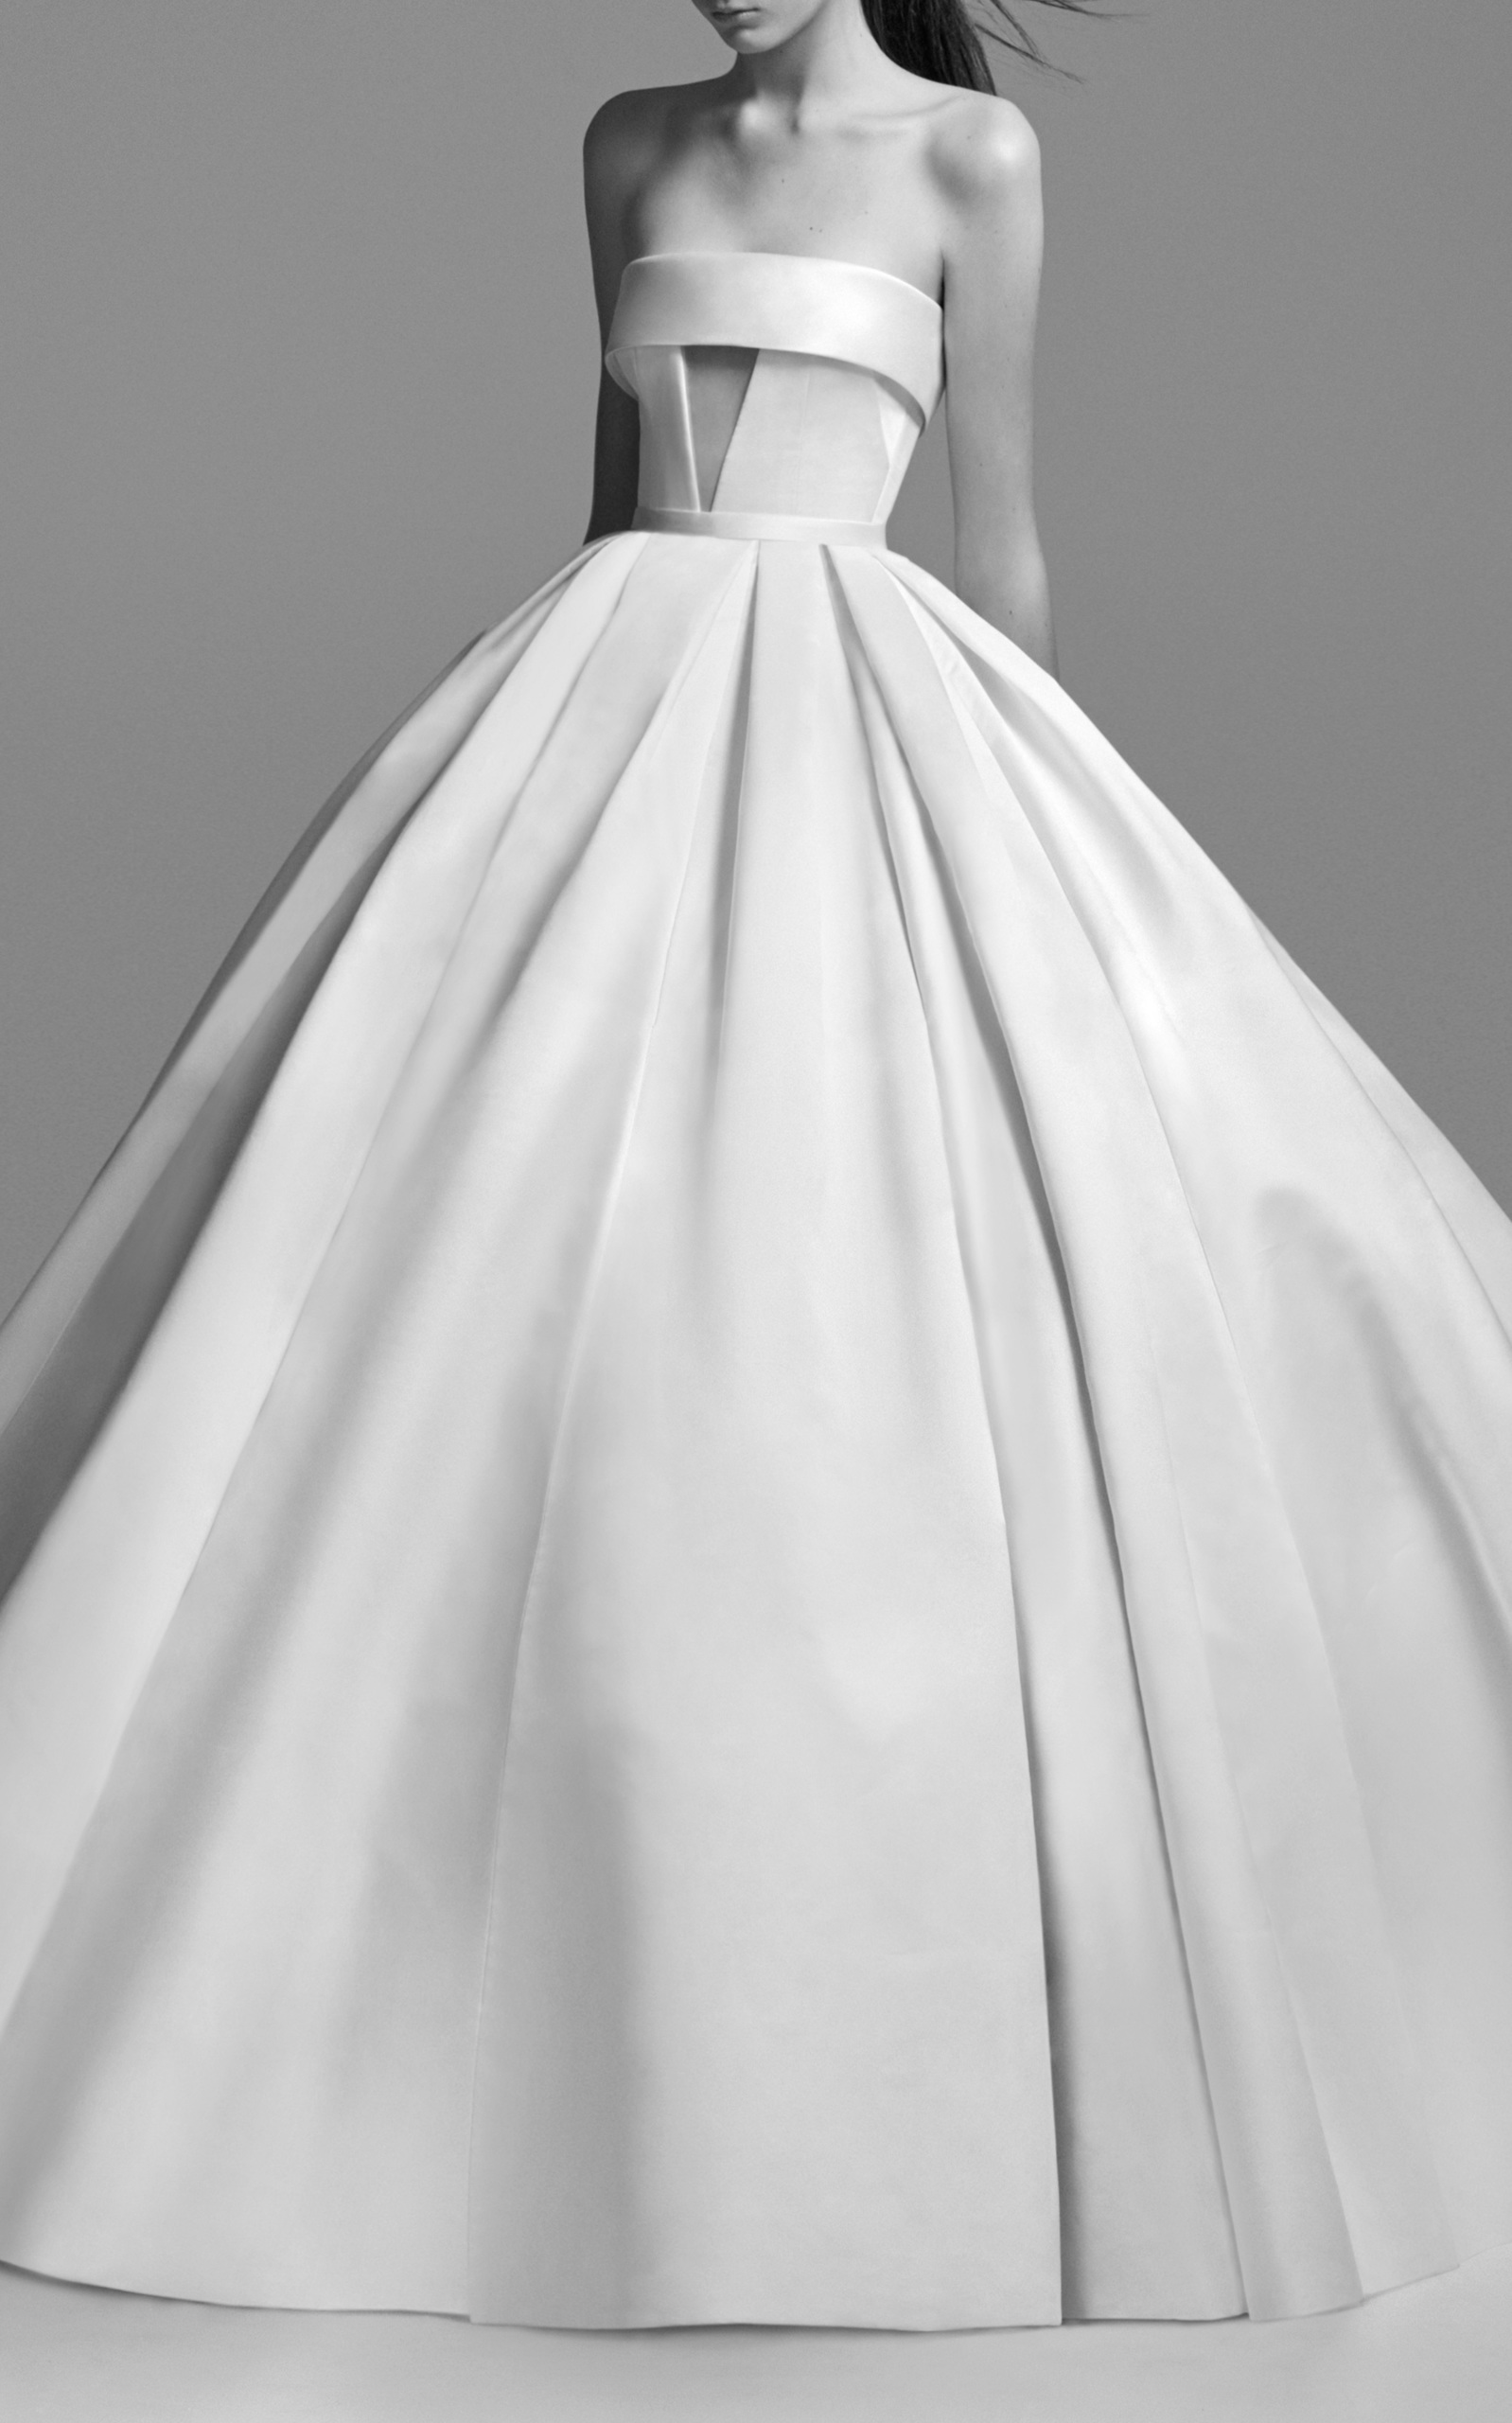 Riley Strapless Satin Cuff Gown by Alex Perry Bride | Moda Operandi